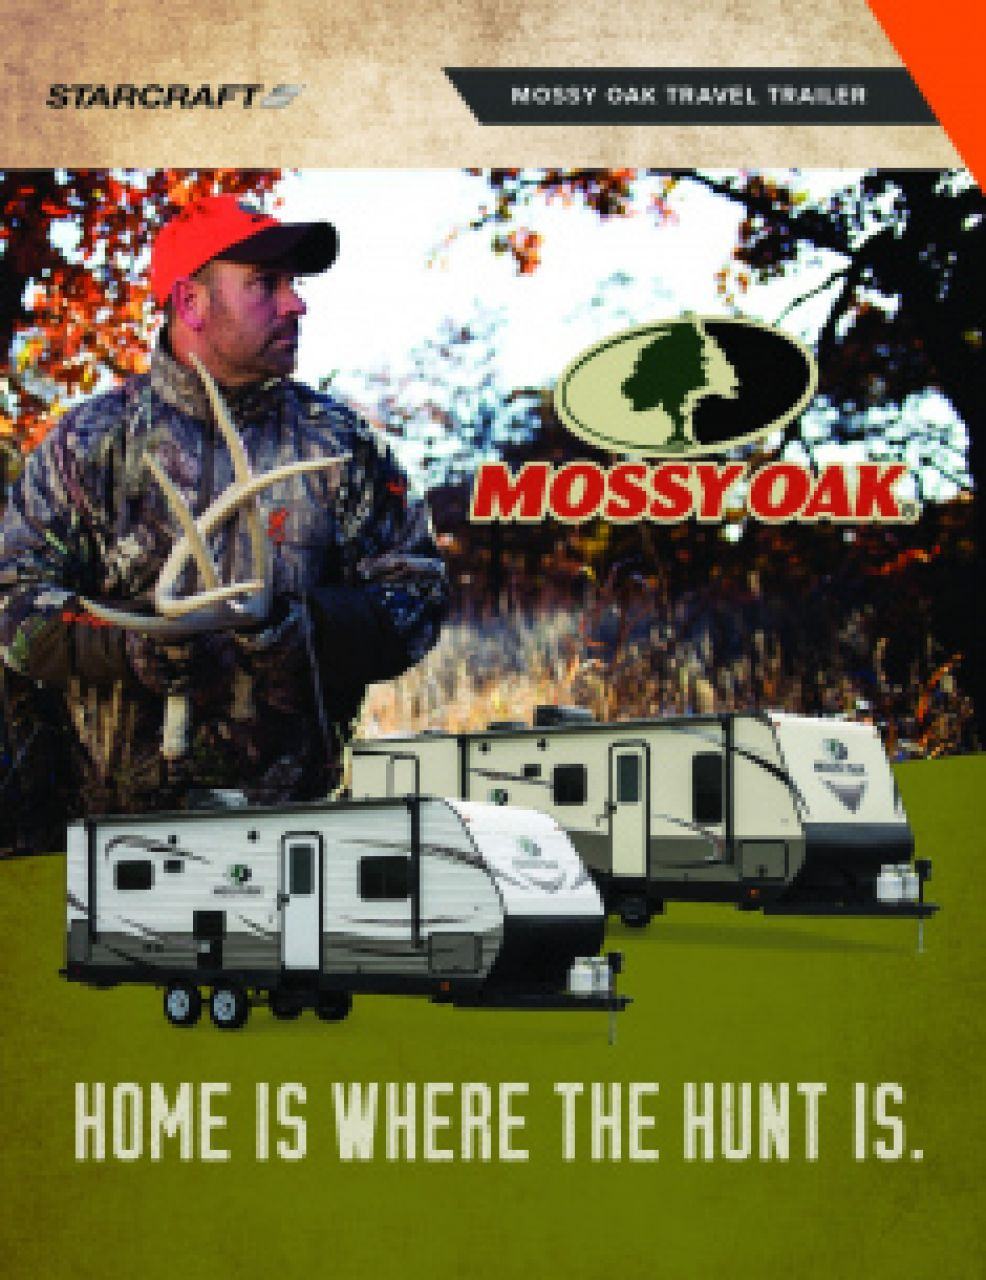 2019 Starcraft Mossy Oak RV Brochure Cover